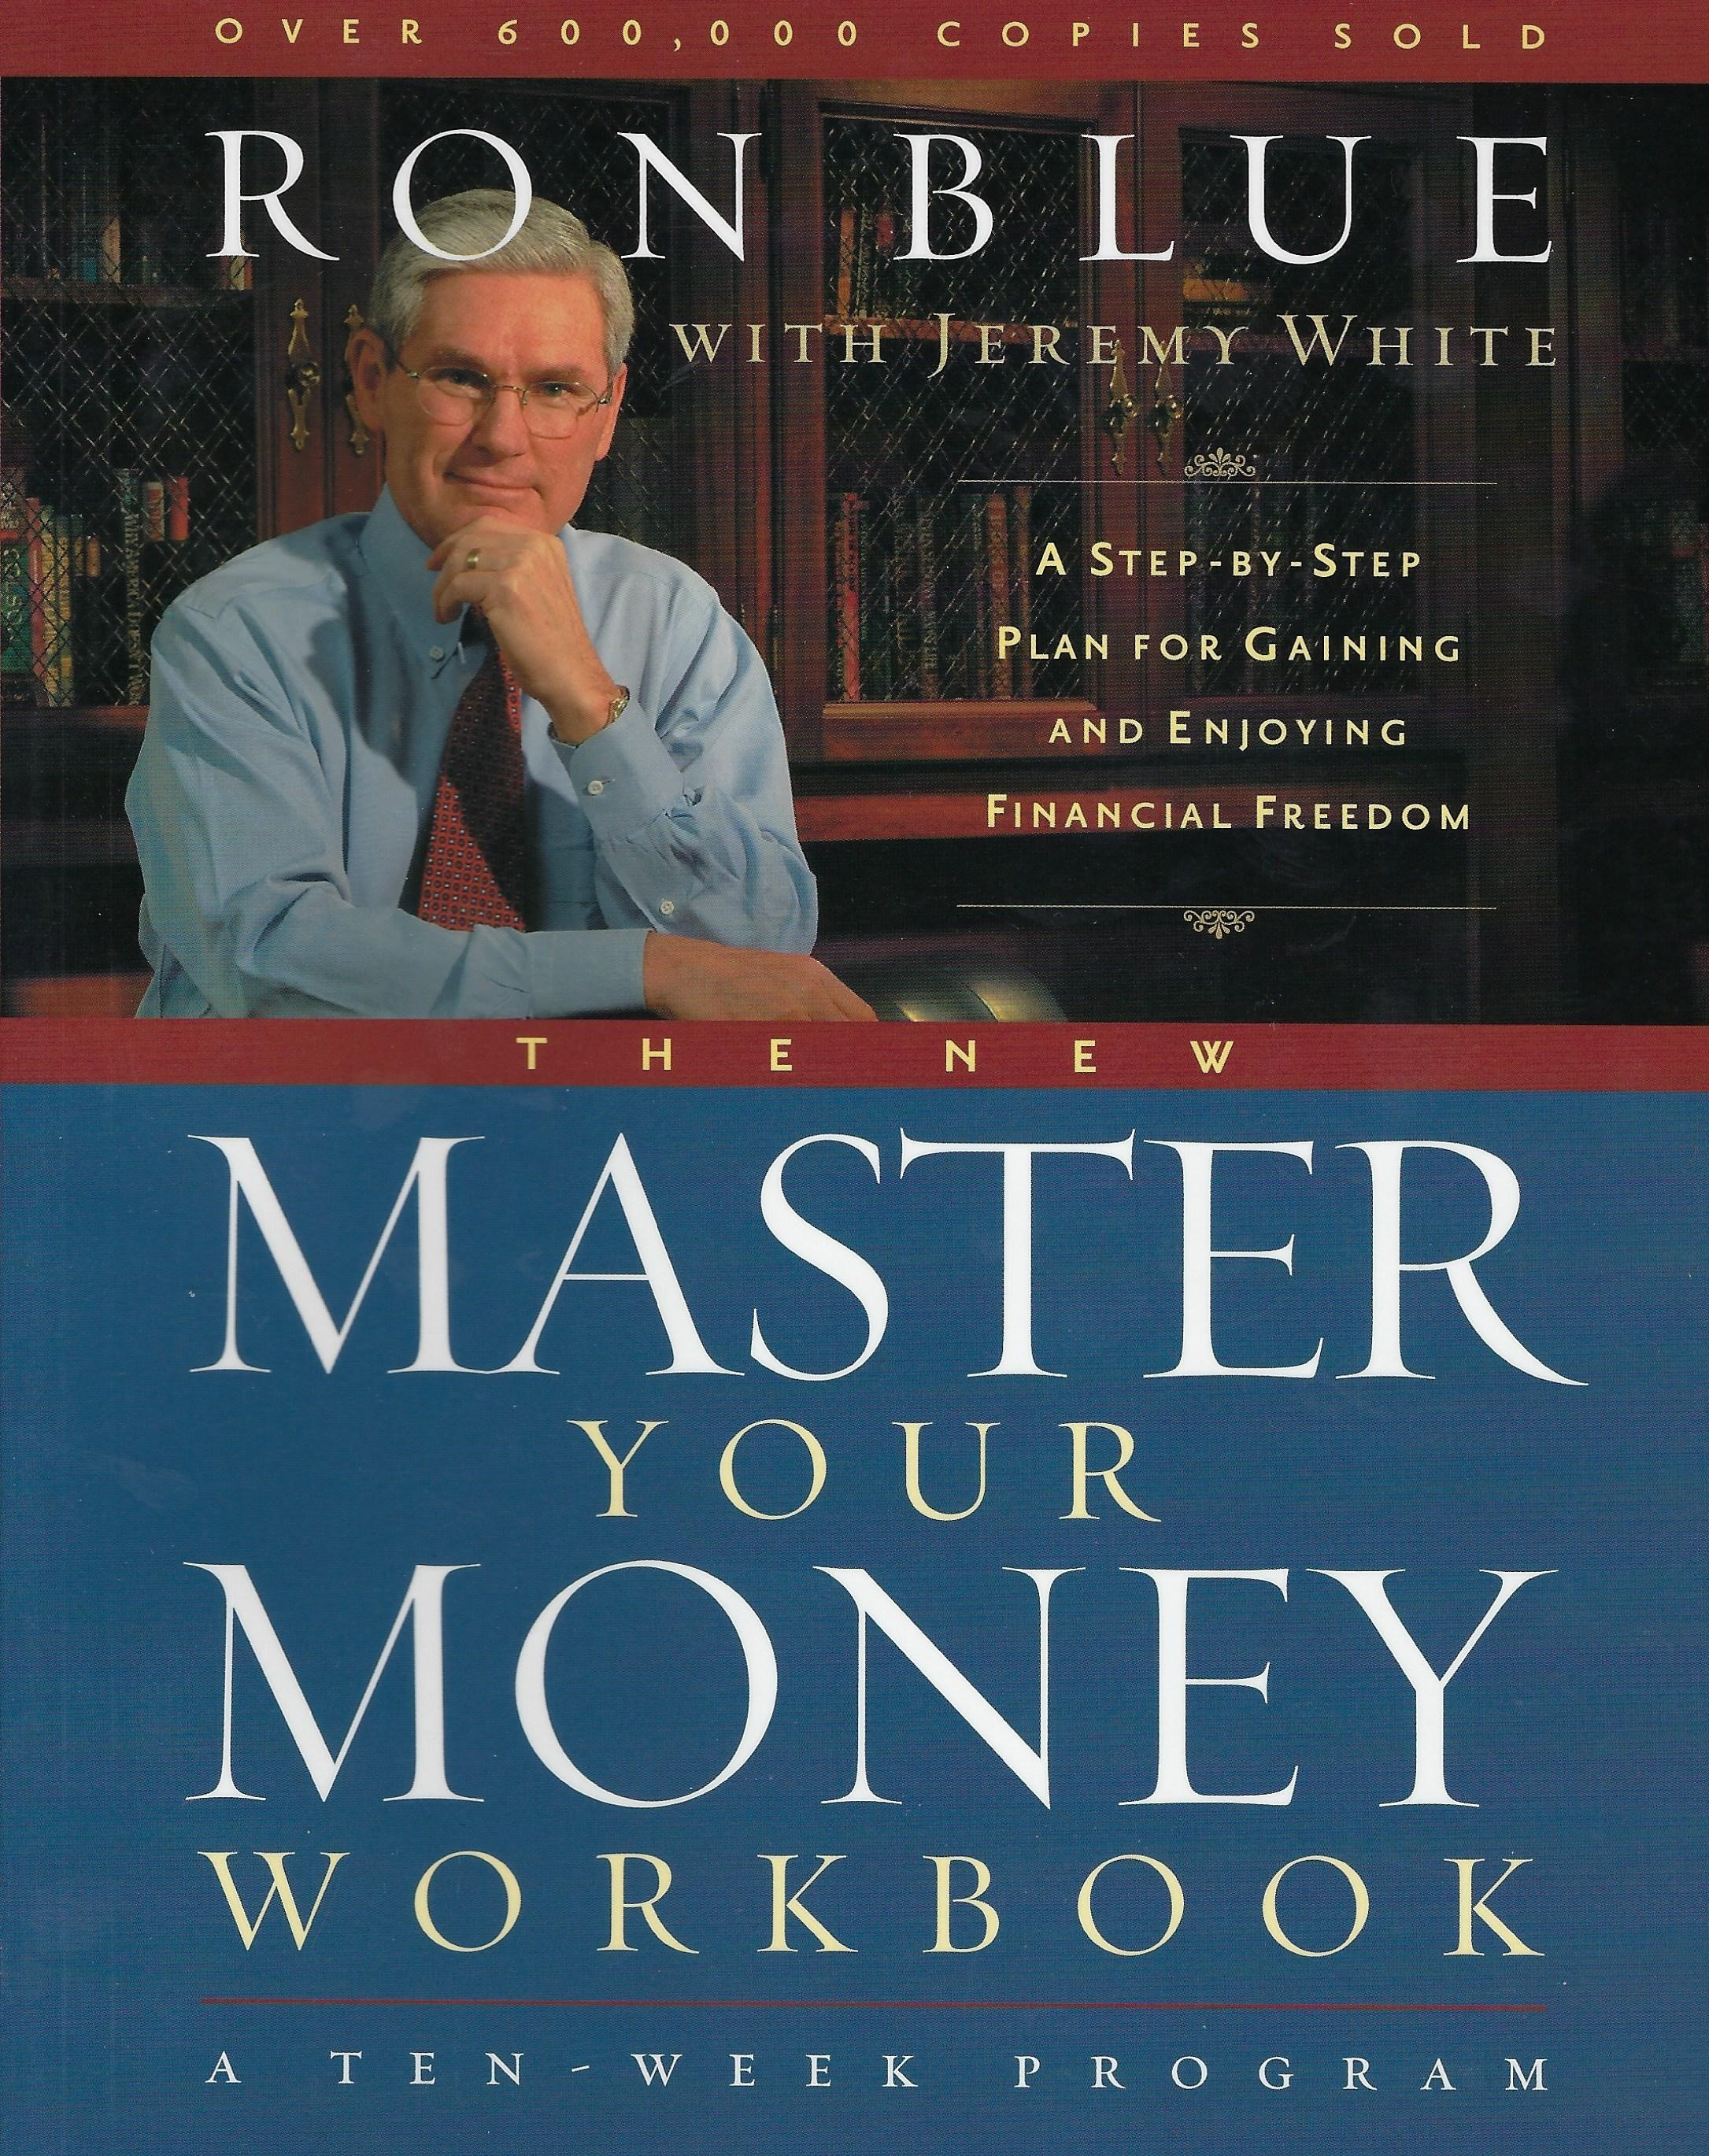 MASTER YOUR MONEY WORKBOOK Ron Blue